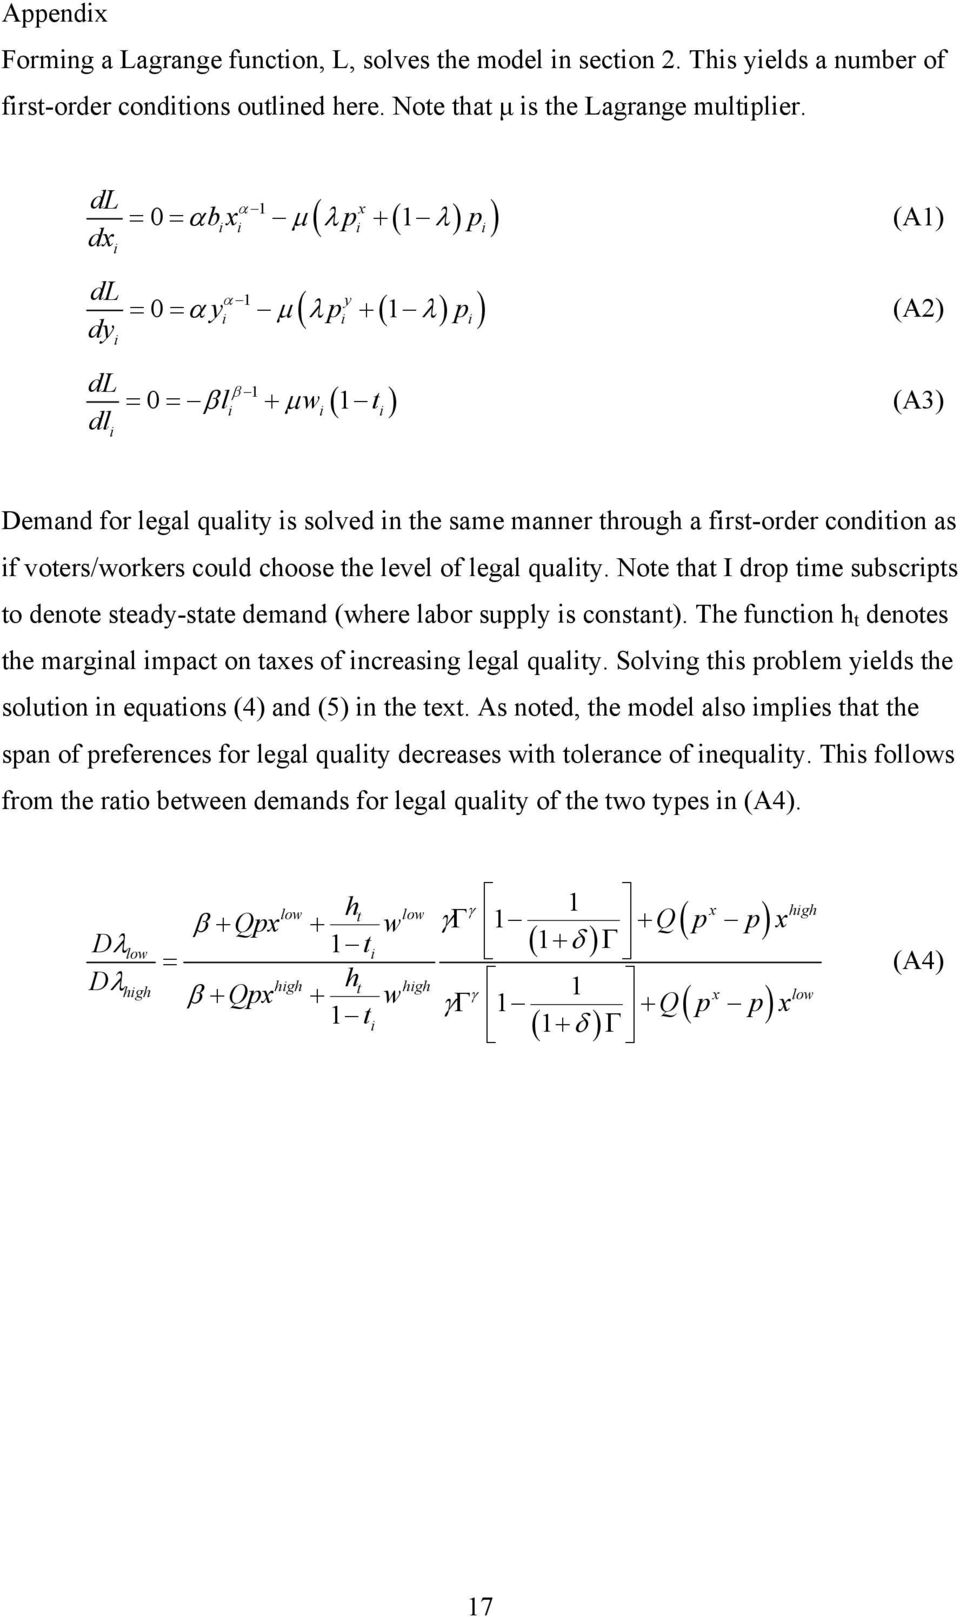 manner through a first-order condition as if voters/workers could choose the level of legal quality. Note that I drop time subscripts to denote steady-state demand (where labor supply is constant).